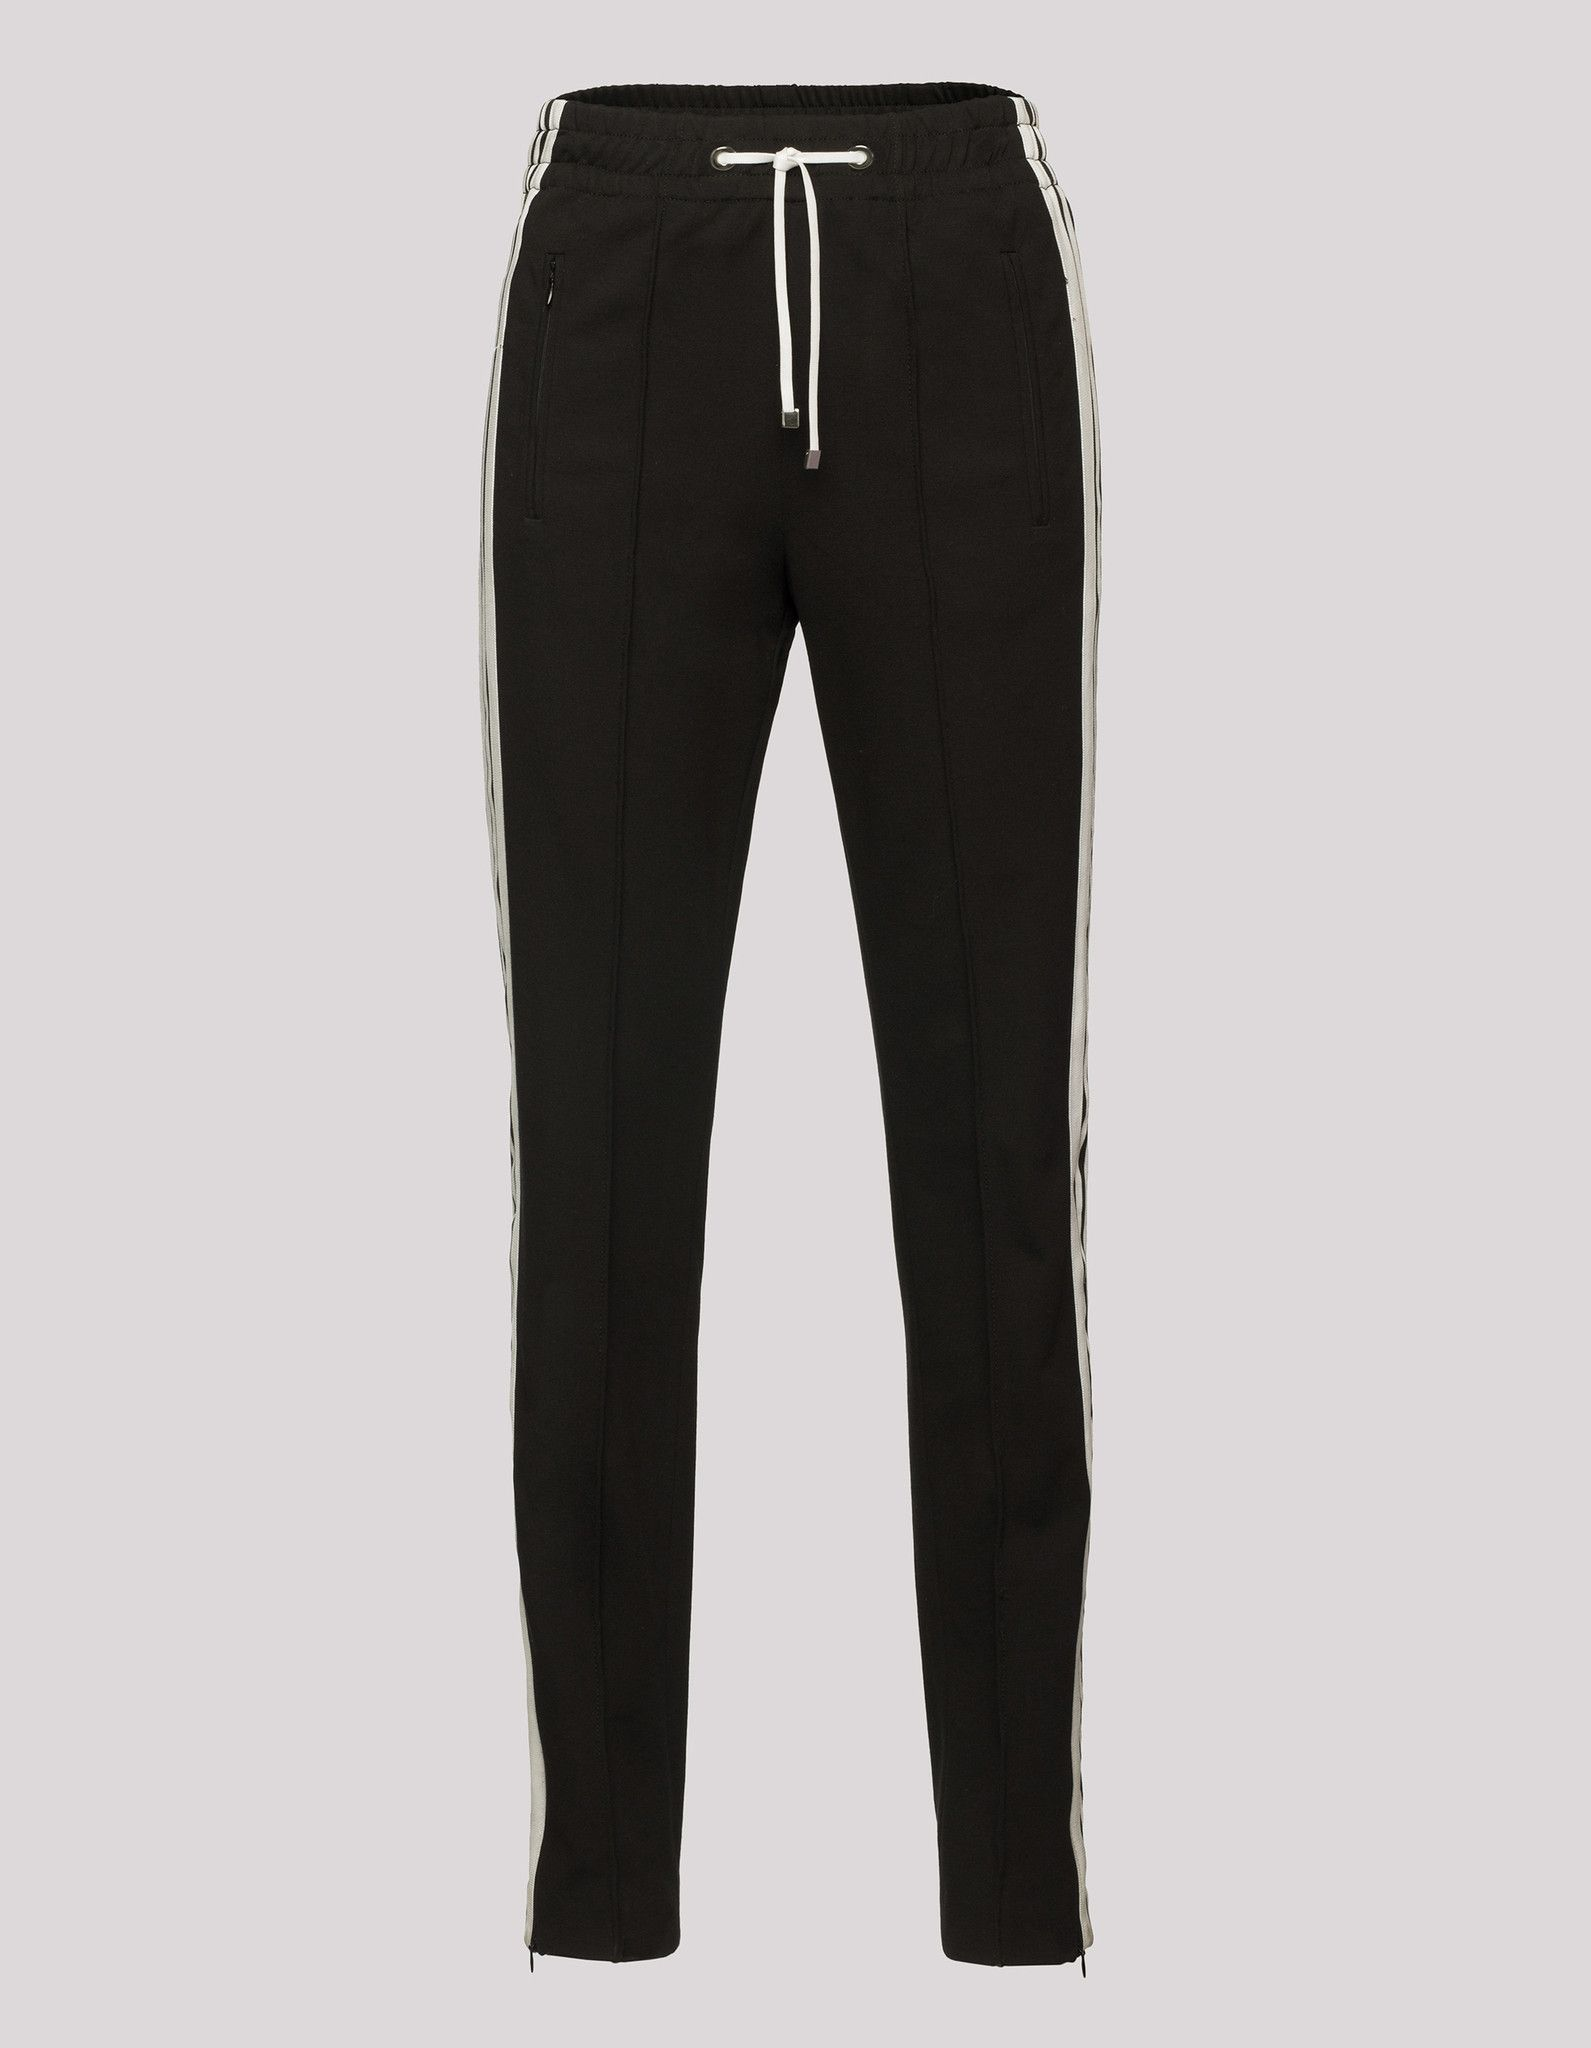 PANTALONE DONDUP JOGGING IN MIX DI VISCOSA STRETCH